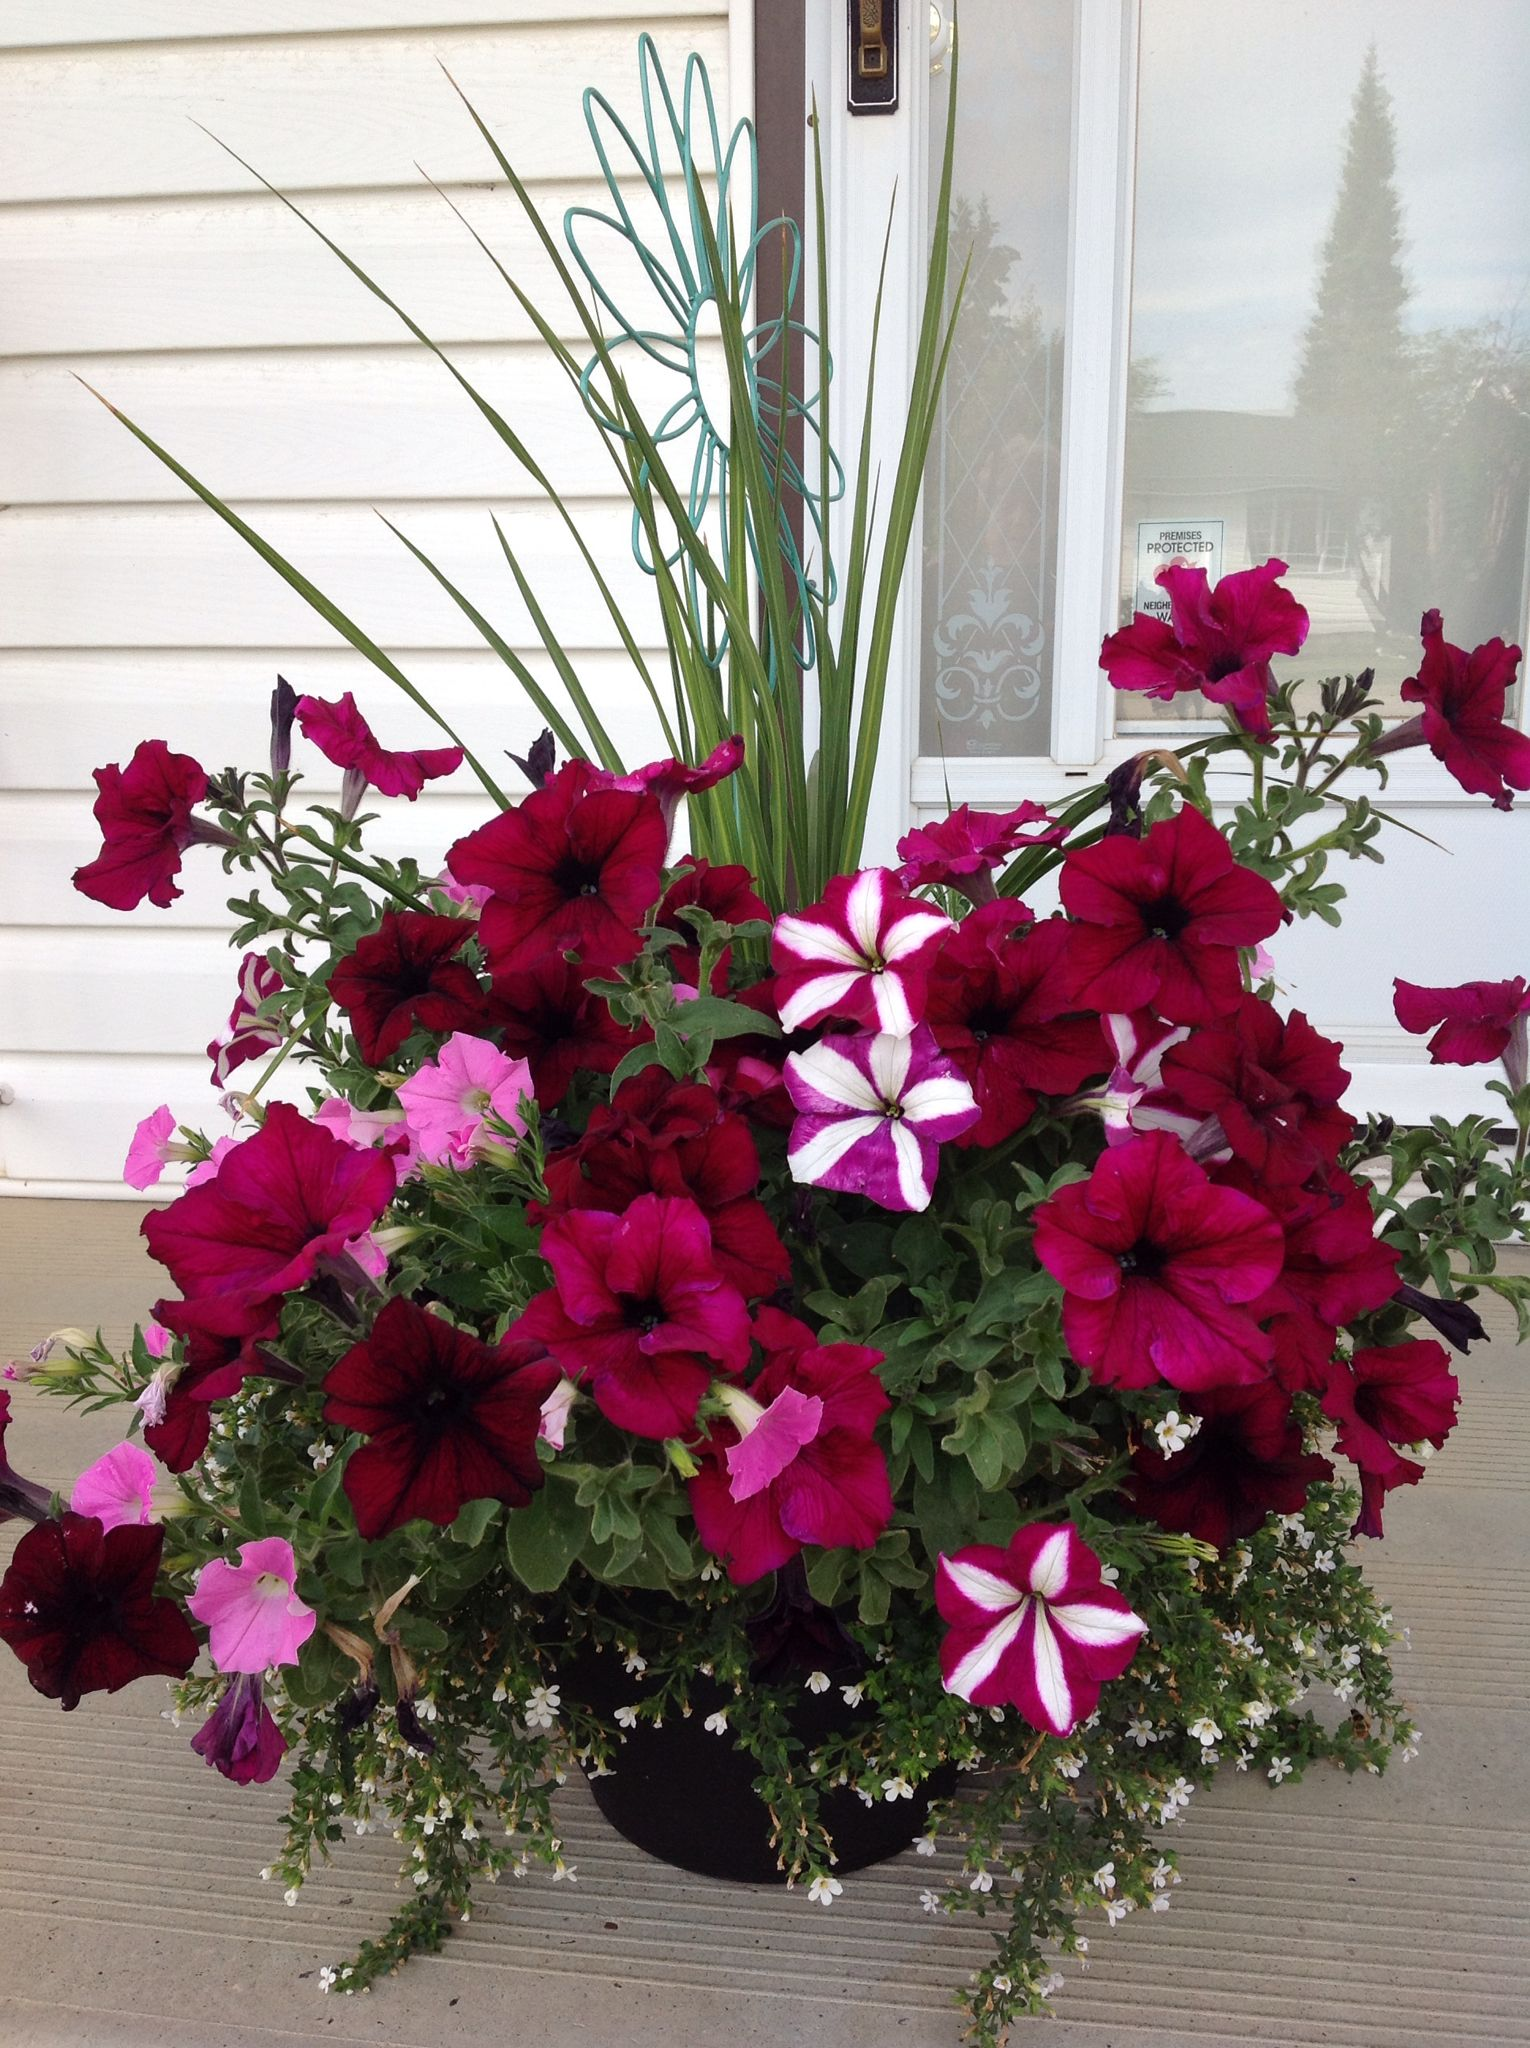 Variety of Petunias in Container